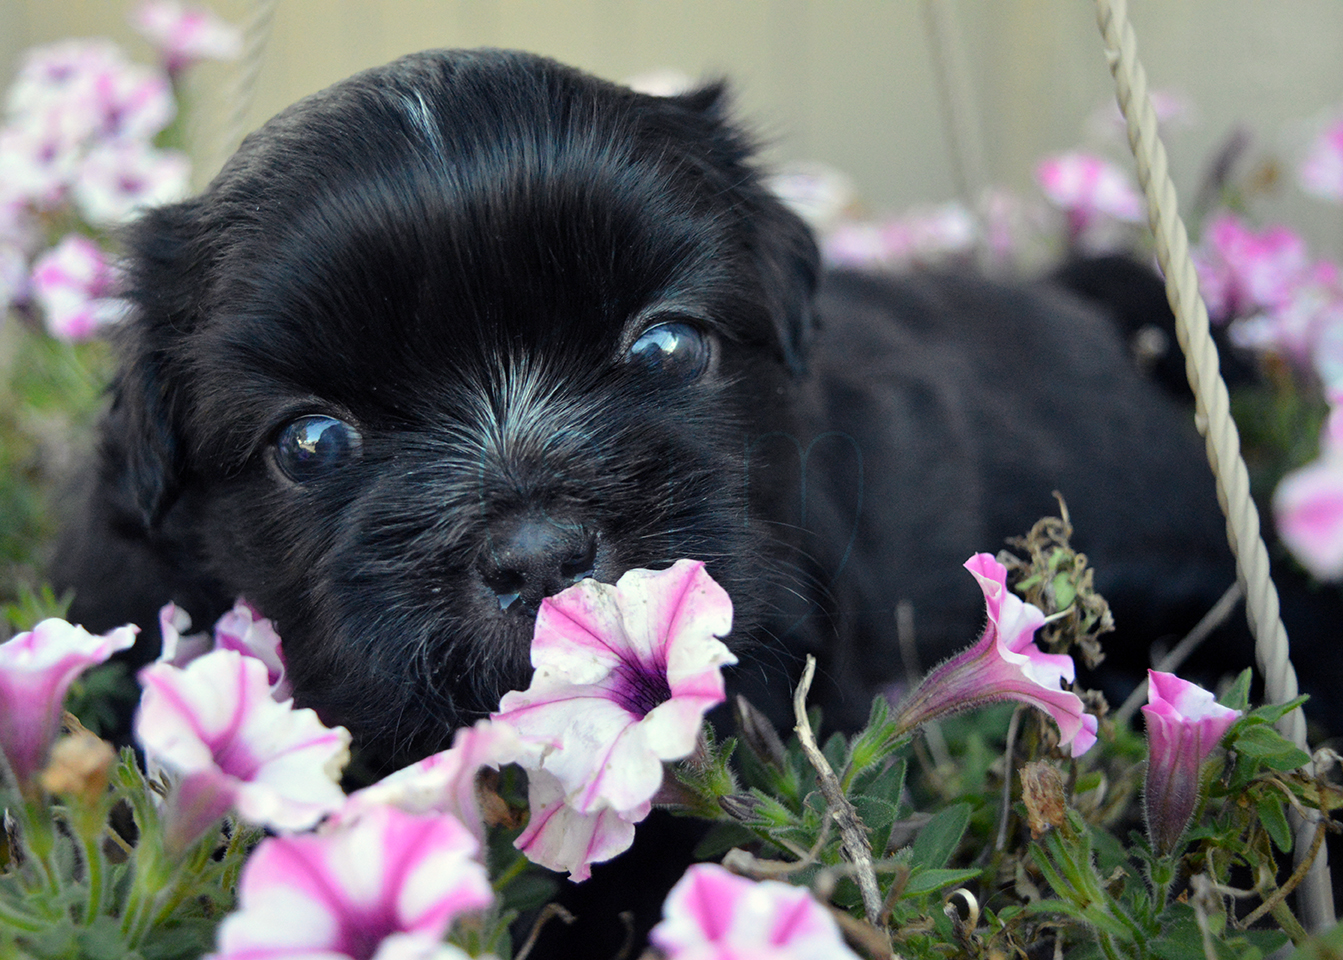 Puppy hiding in the flowers